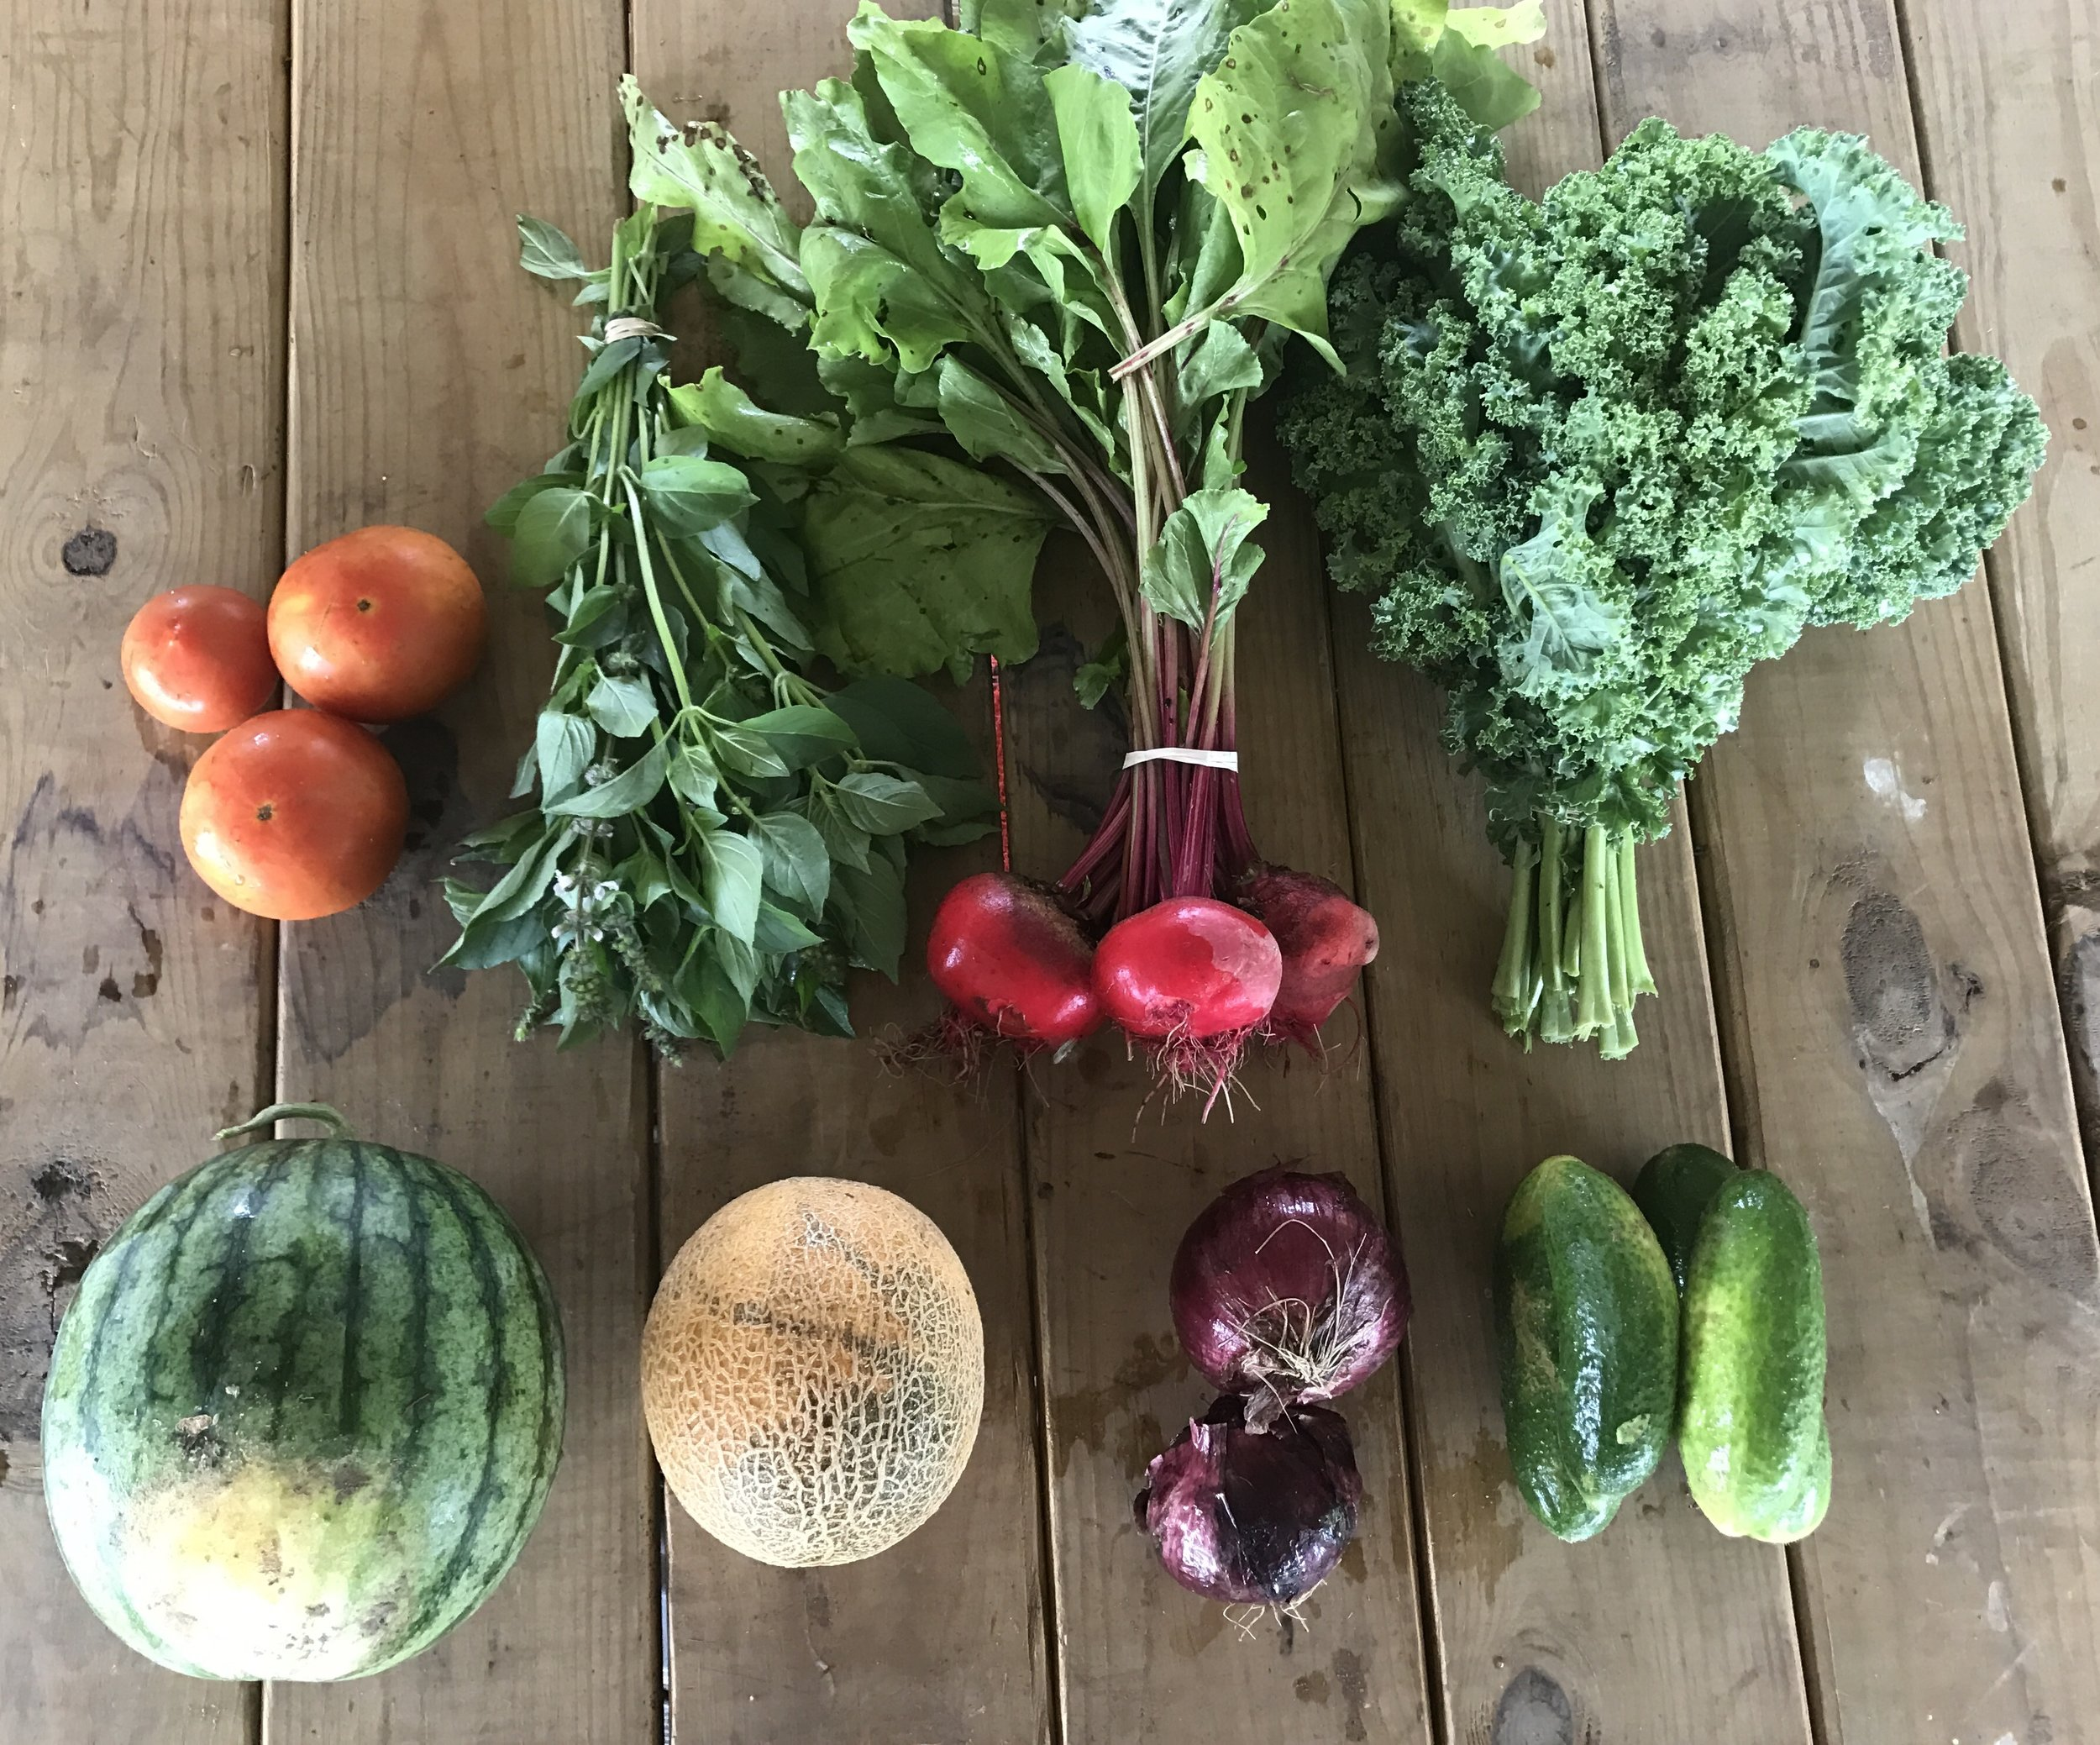 Top Row: Tomatoes, Lemon Basil, Beets, and Curly Kale  Bottom Row: Miniature Watermelon, Miniature Cantaloupe, Cured Onion, and Gherkin Cucumbers